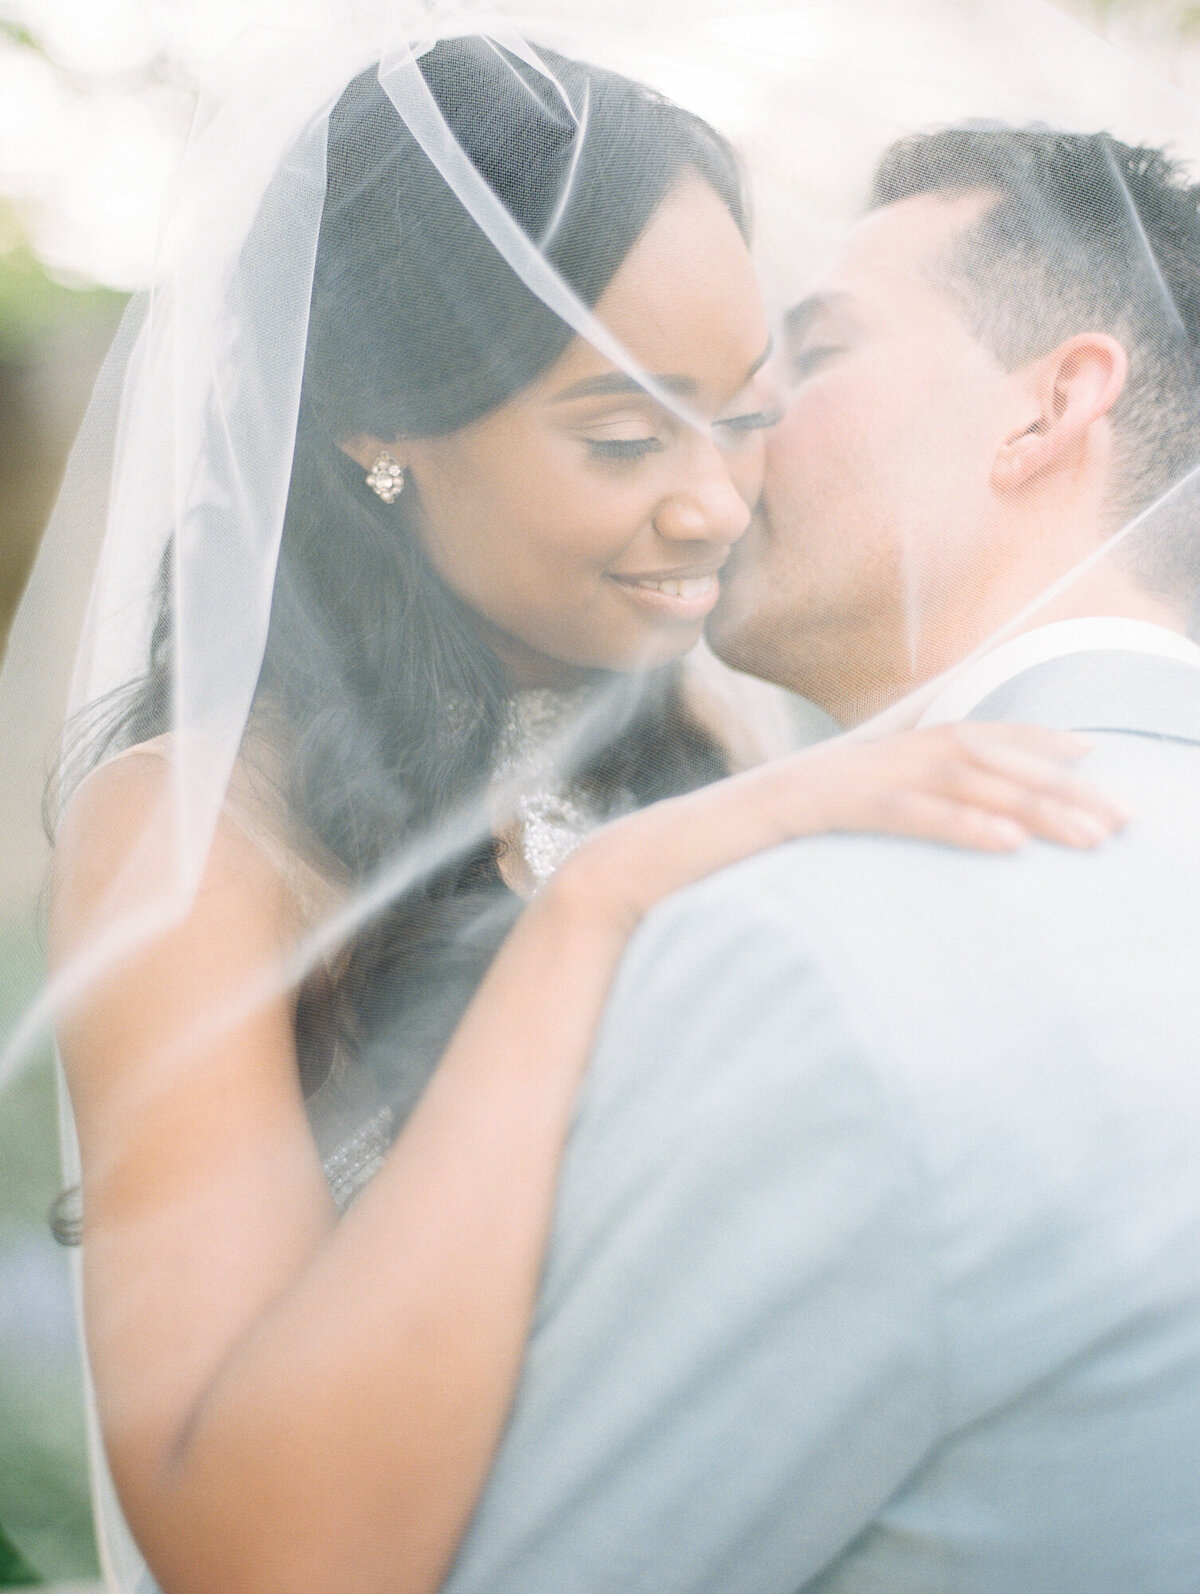 Groom kissing bride underneath veil